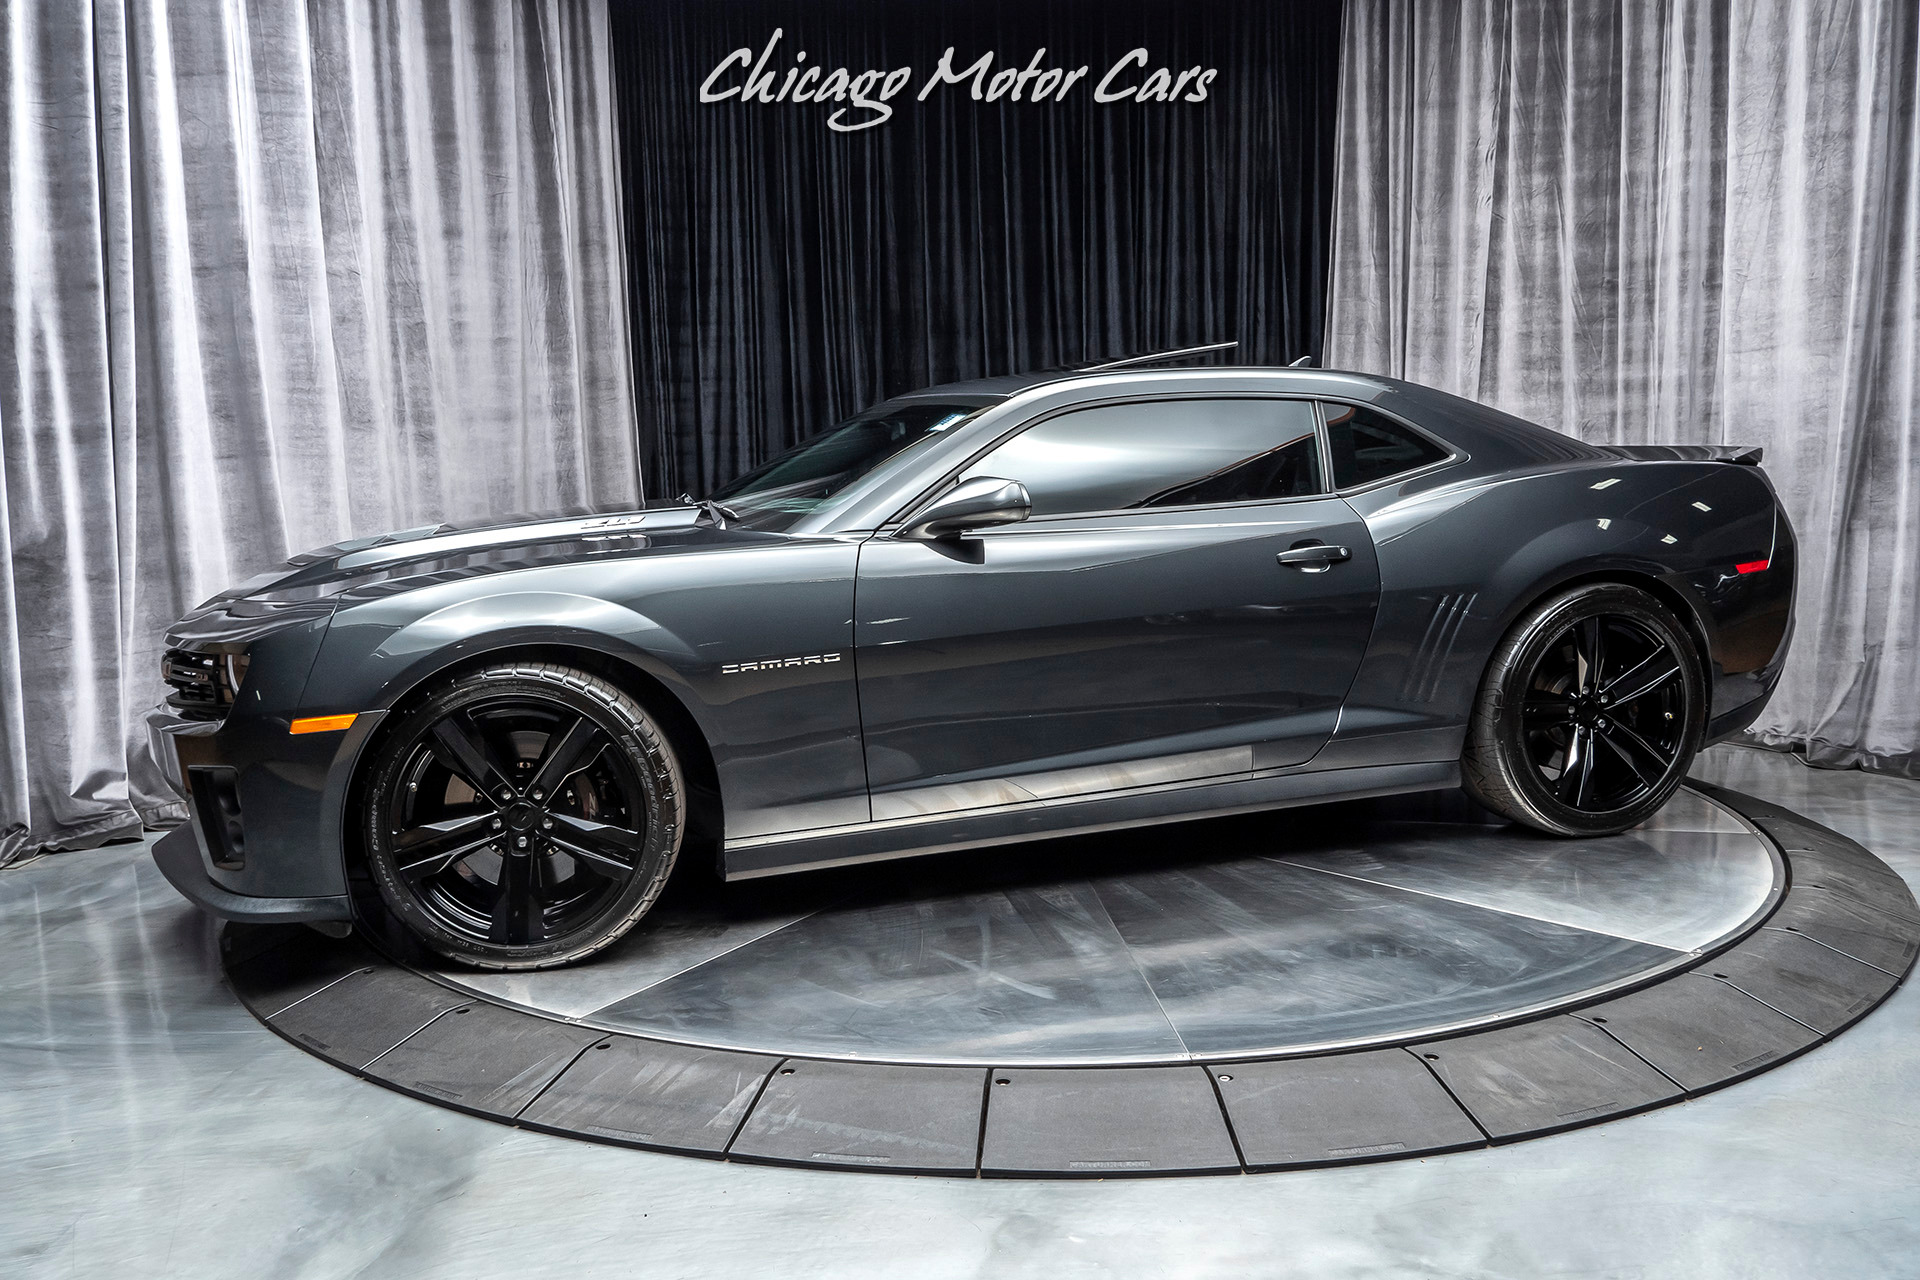 Used 2013 Chevrolet Camaro ZL1 Coupe MSRP $61,200 ...2013 Camaro Zl1 Supercharger Upgrade